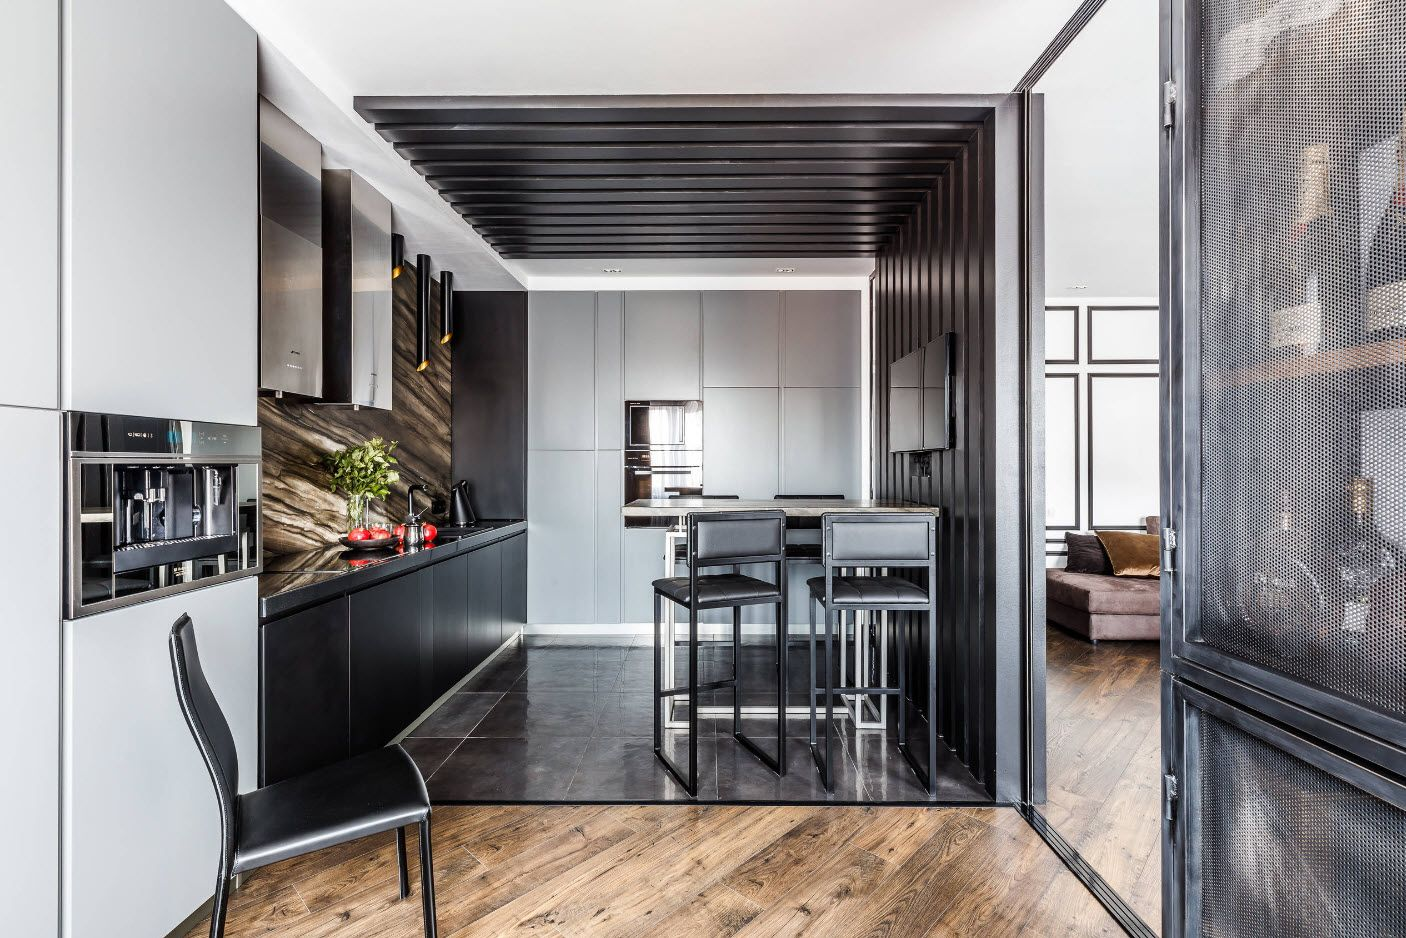 Steel gray kitchen zone with dining table and high stools